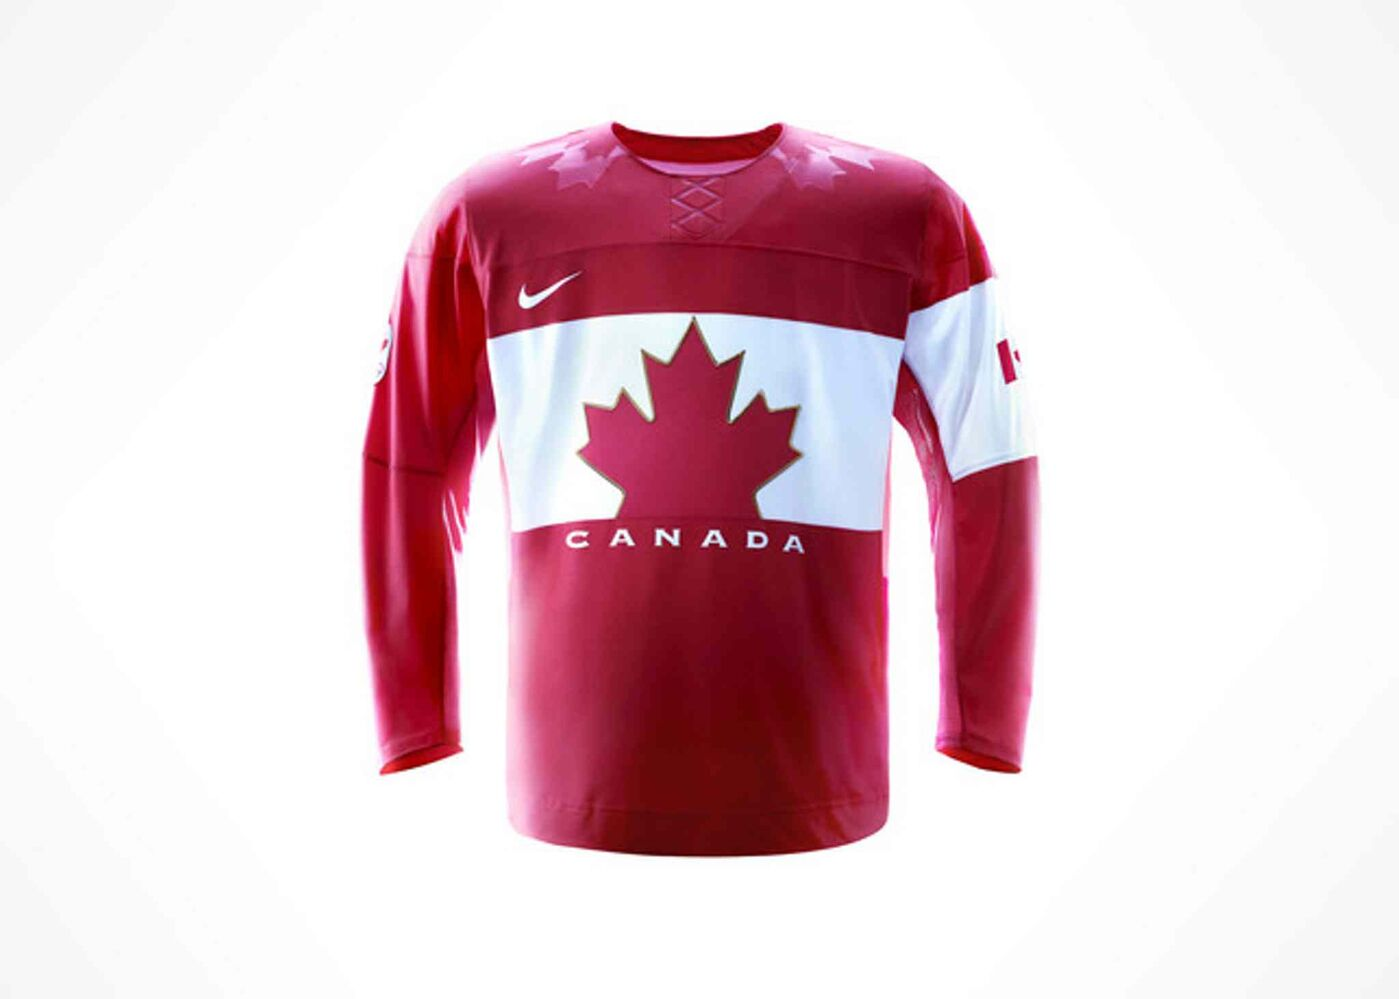 """The iconic red jersey celebrates the rich history of hockey in Canada. From the vintage-inspired logo on the new lightweight front crest to the Canadian flag on the sleeve and the maple leaf graphics on the shoulders, the new jersey represents Canada from top to bottom."" -Hockey Canada (Nike Inc.)"